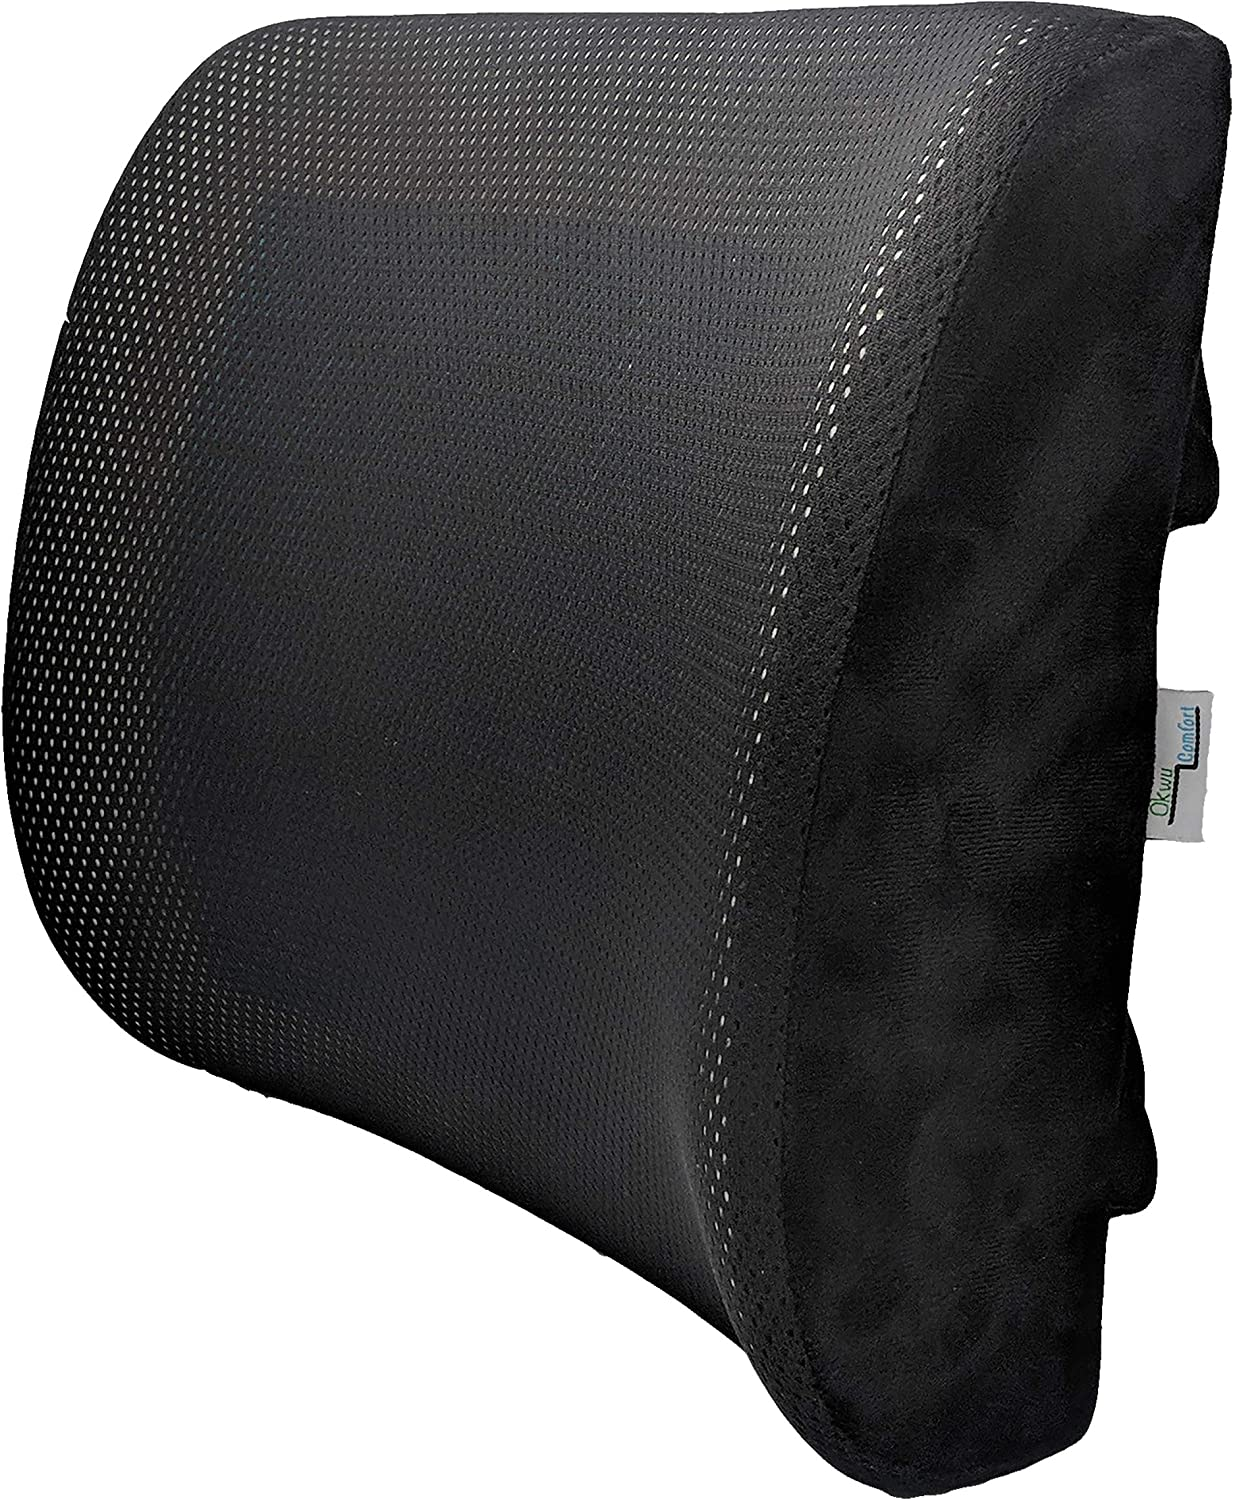 Gel PAD Lumbar Back Support Pillow Cushion for Lower Pain Relief for Cars Wheelchair Chair Office Sitting Black mesh Cover